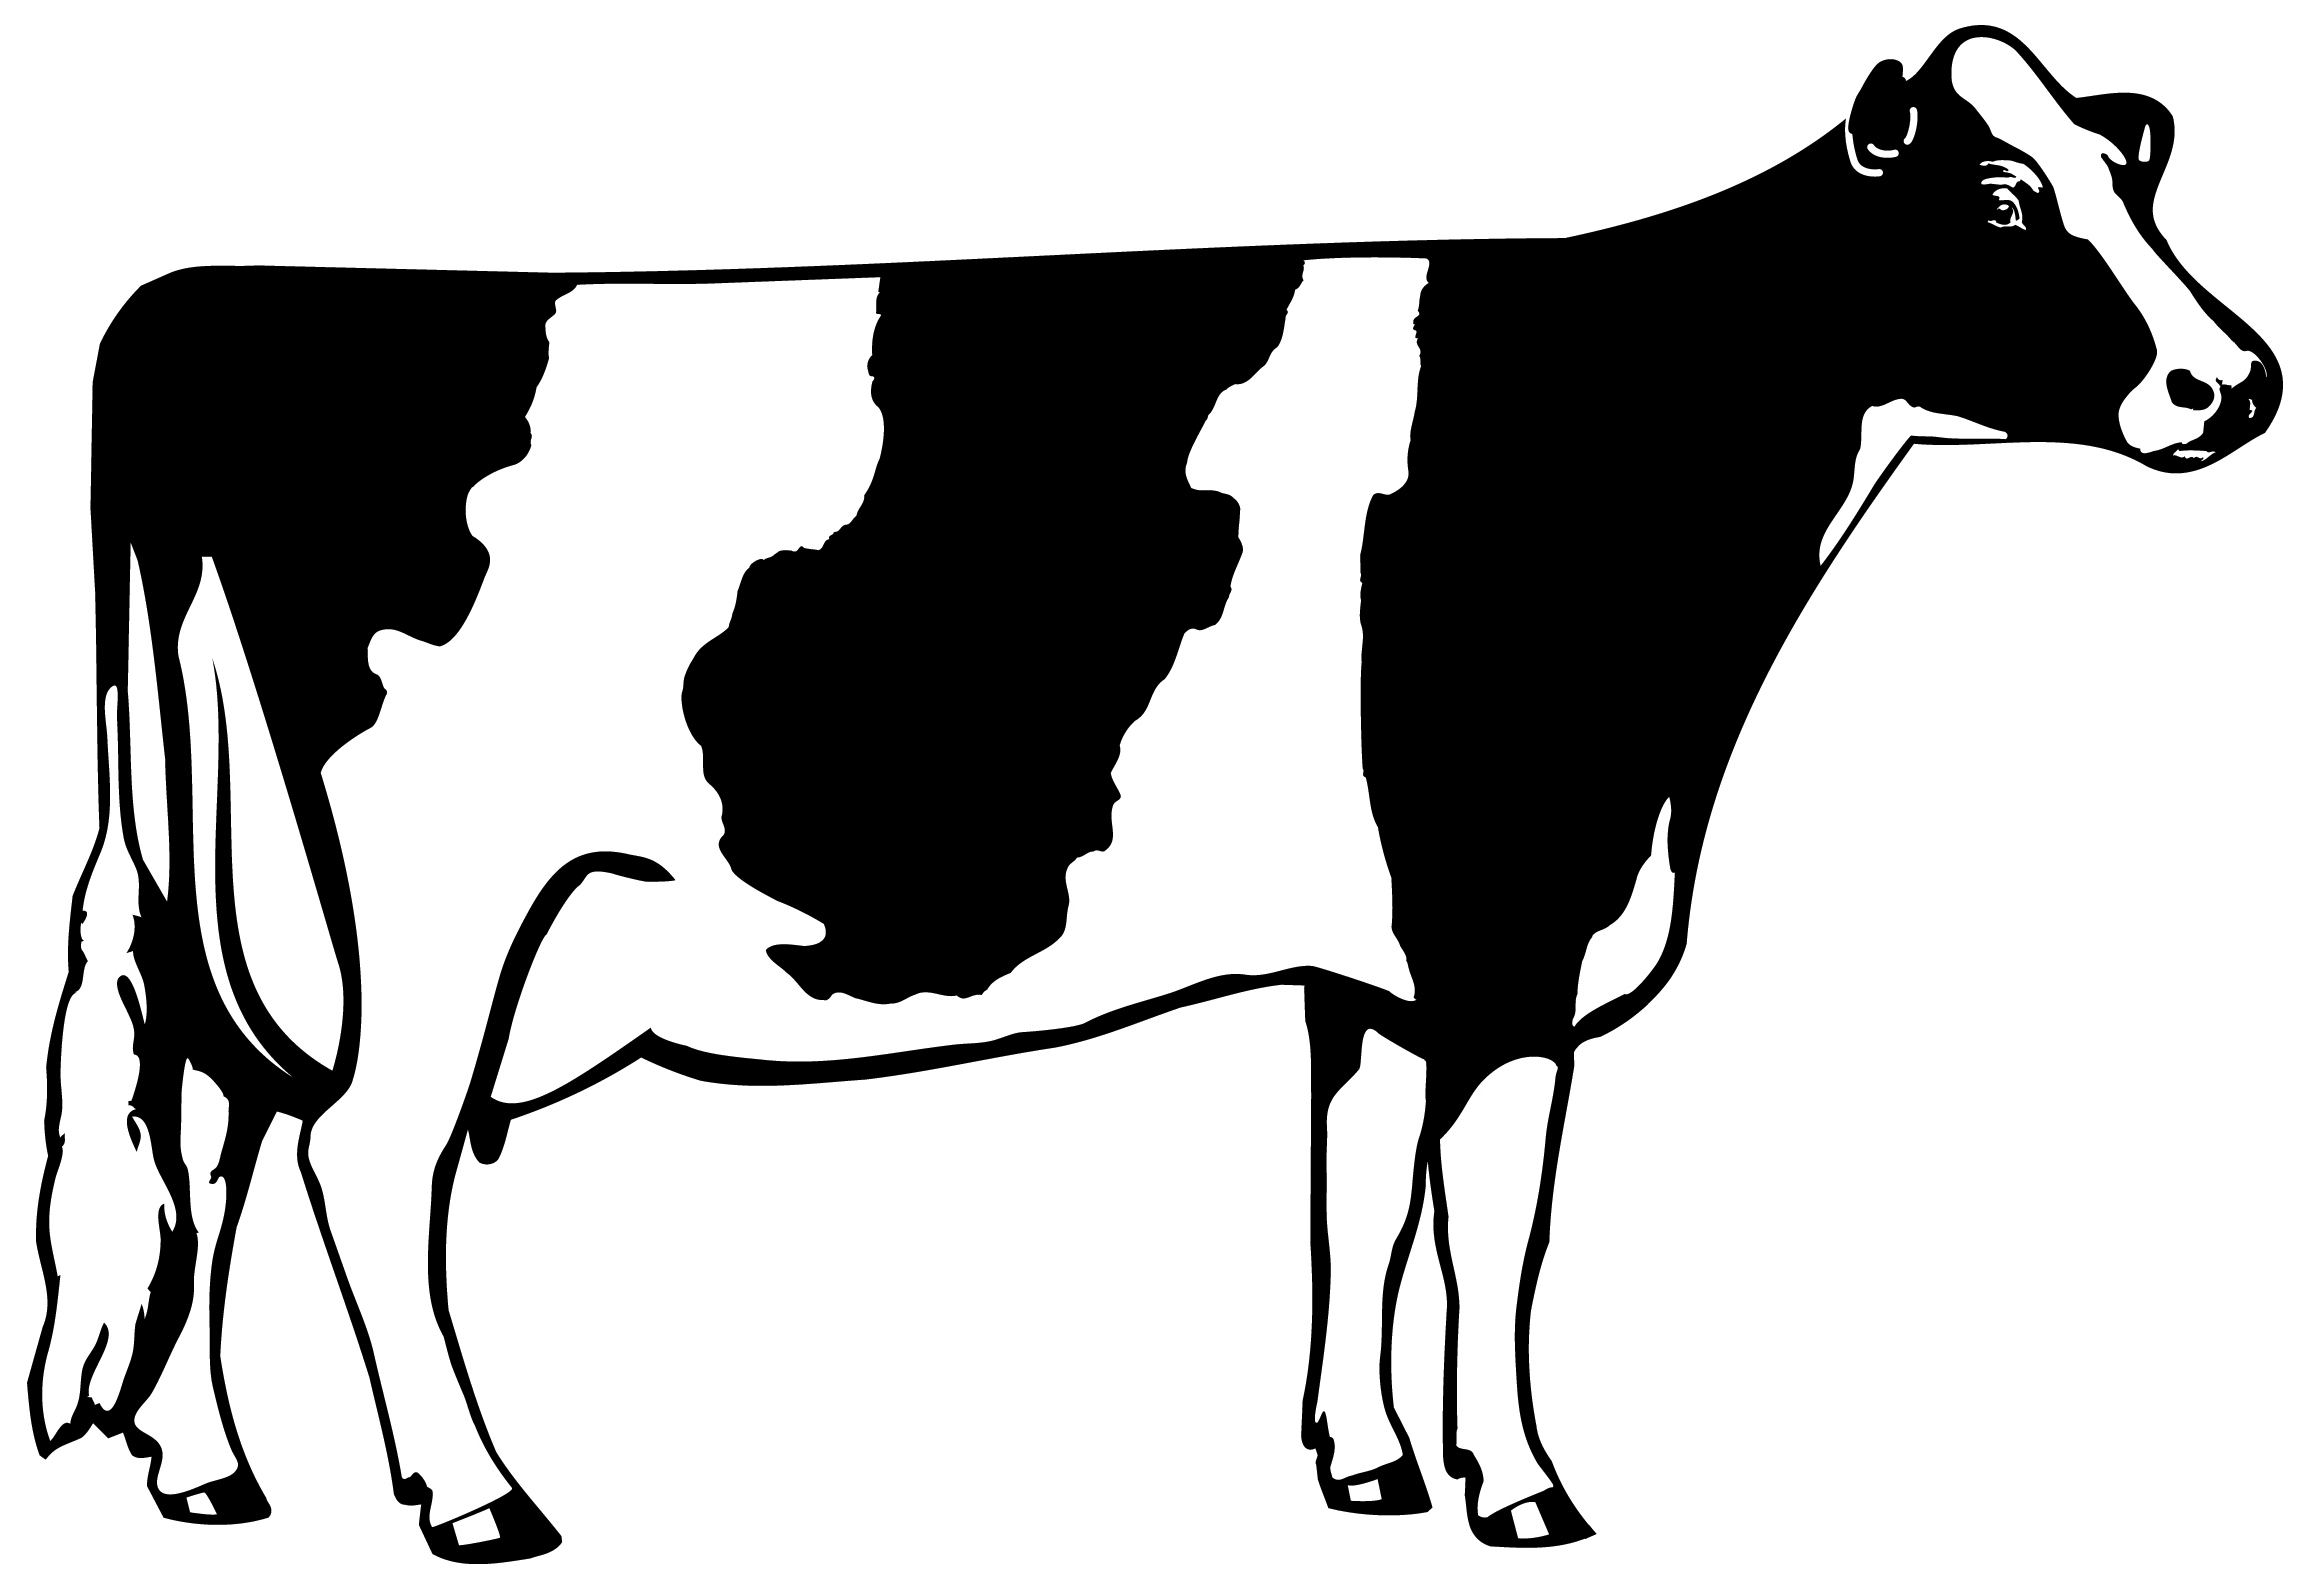 Clipart of a cow in bikini jpg royalty free library Holstein Friesian cattle Beef cattle Dairy cattle Clip art - Cow ... jpg royalty free library